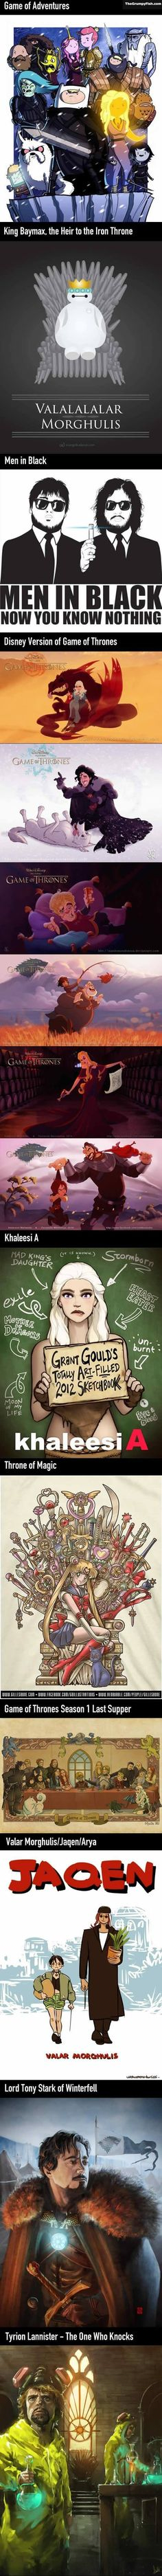 These Game of Thrones Mashups are so lovely! Game O Thrones, Game Of Thrones Books, Game Of Thrones Quotes, Fire Book, Series Movies, Tv Series, Shows On Netflix, Winter Is Coming, Best Games